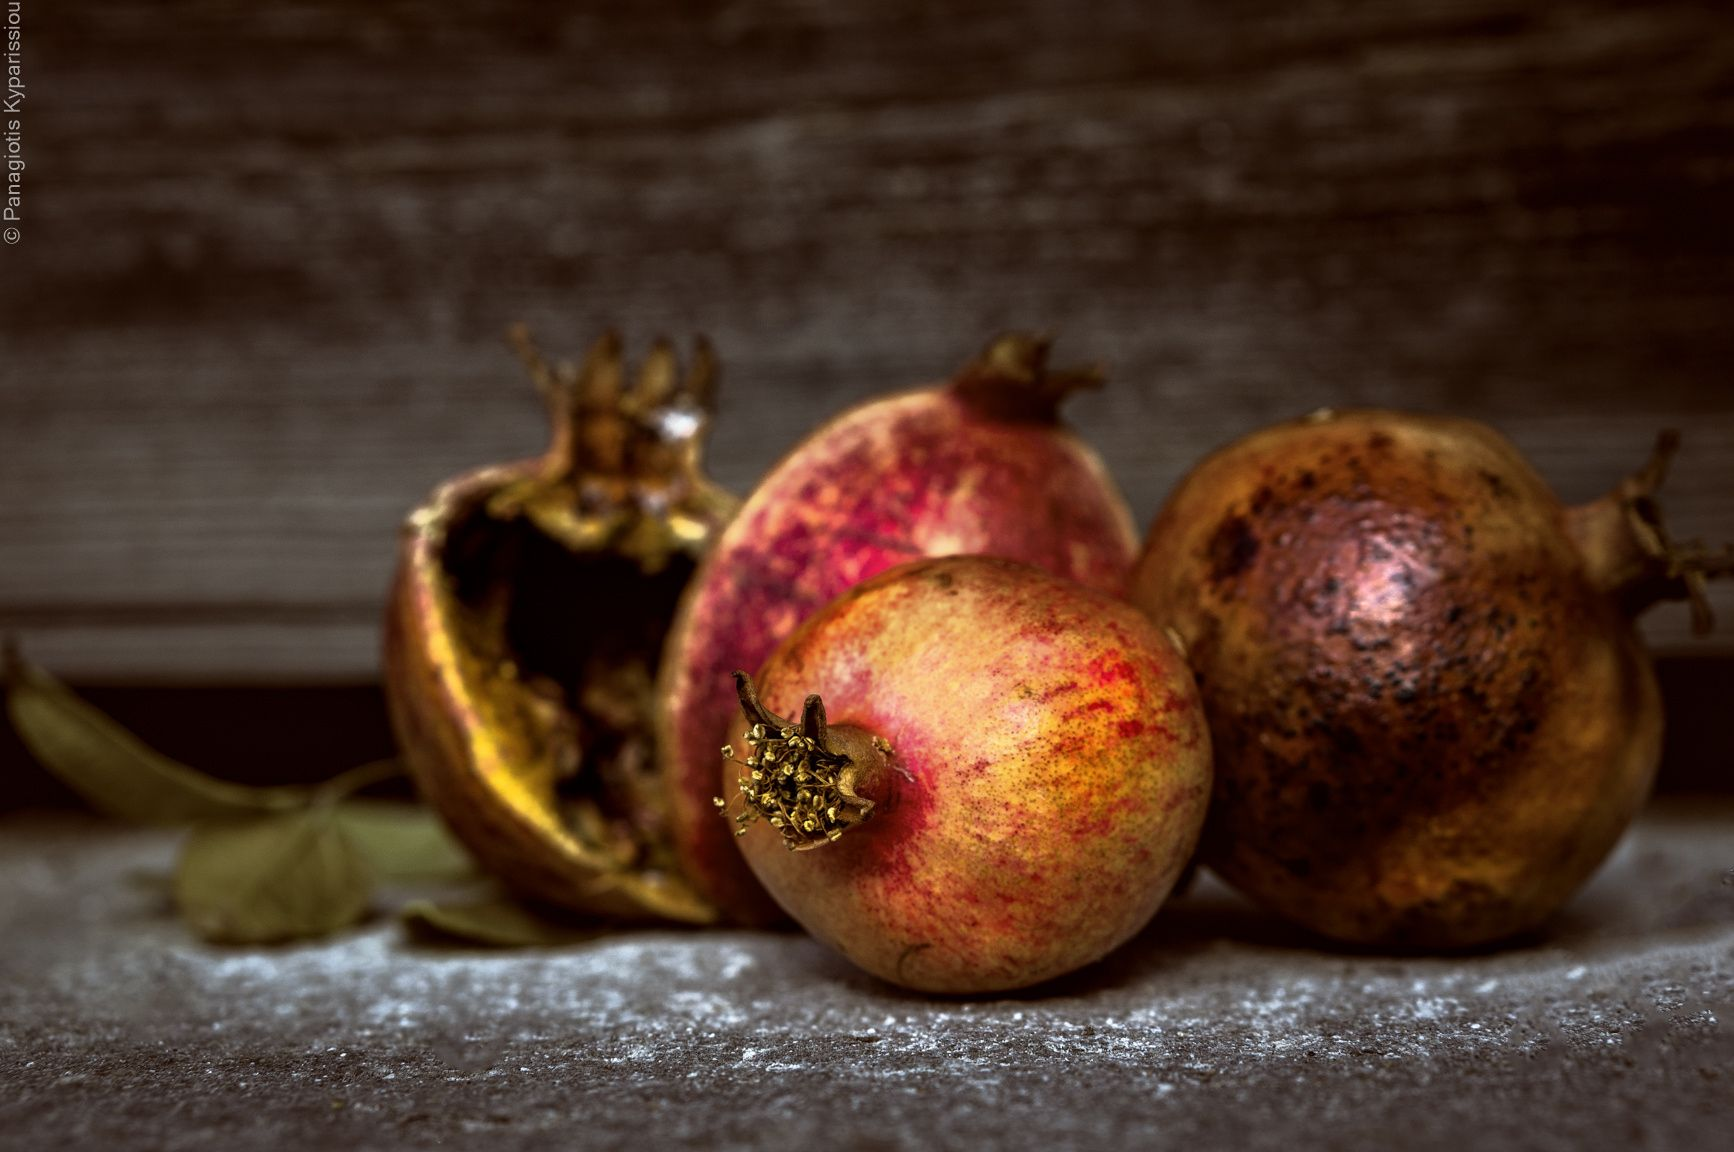 Pomegranate - null